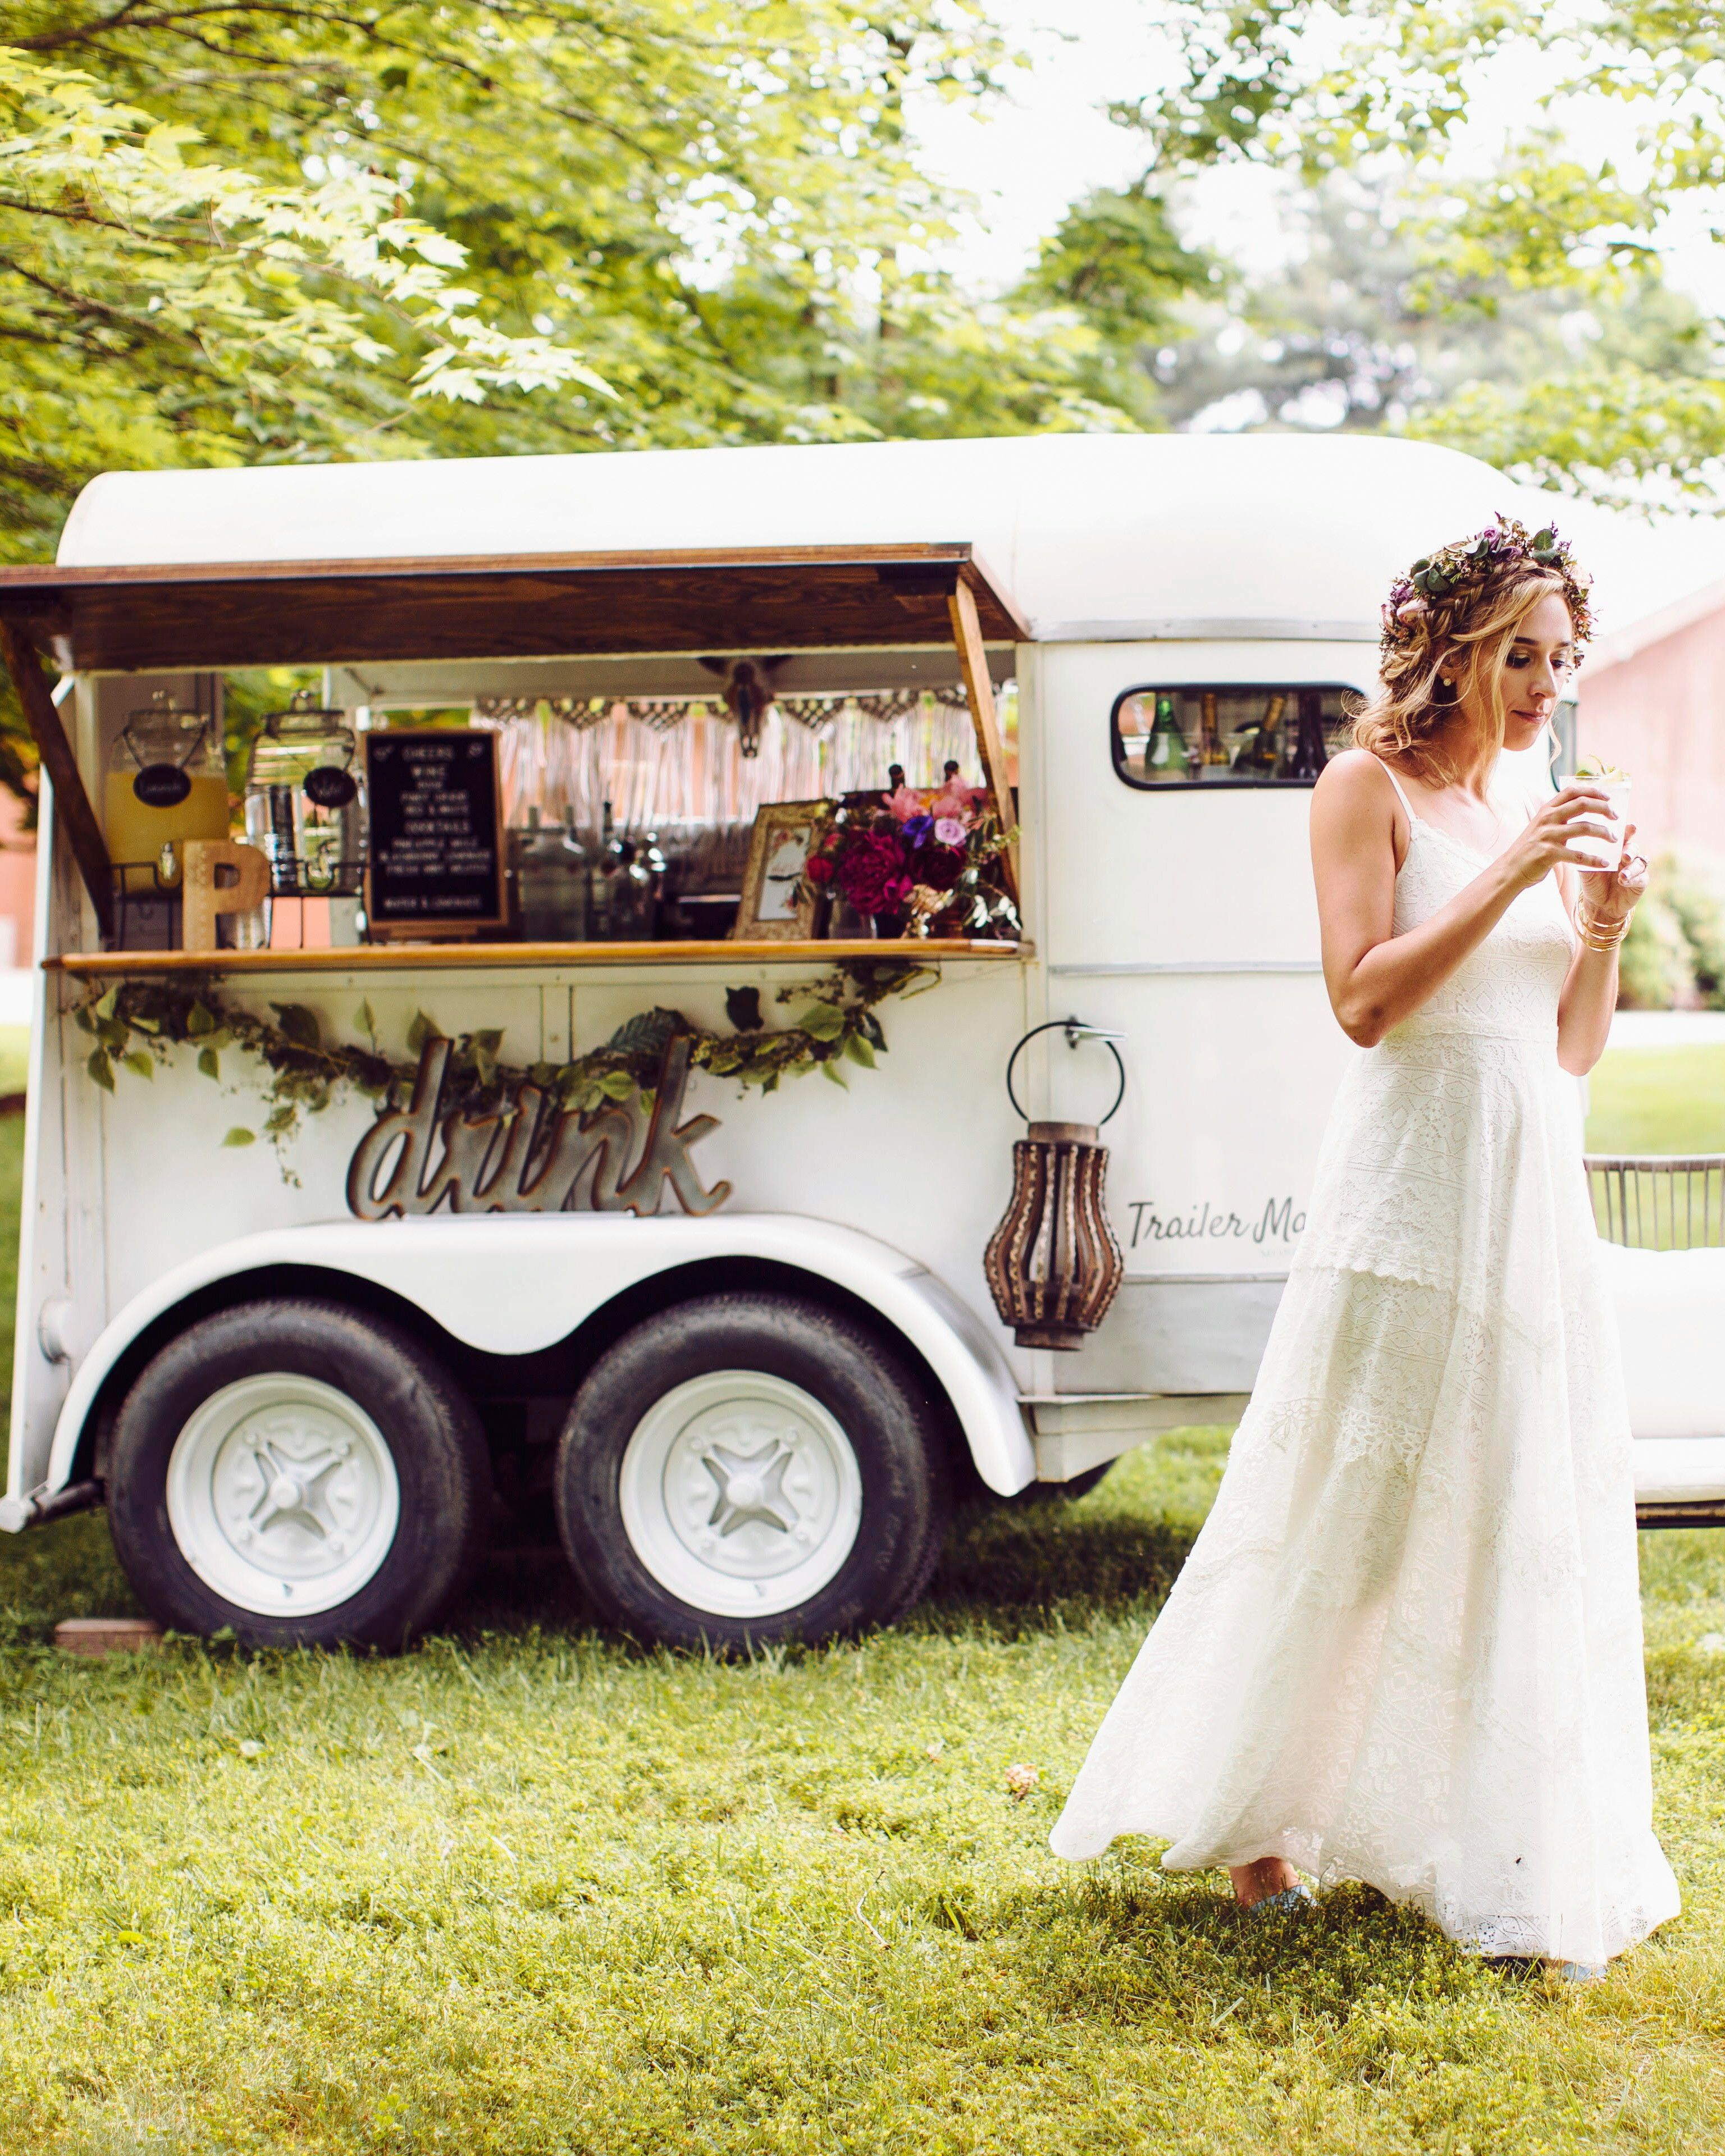 I Believe That Works For Me Bar Staffing And Mobile Bar Rentals Available For Weddings An Mobile Bar Wedding Catering Near Me Order Wedding Invitations Online